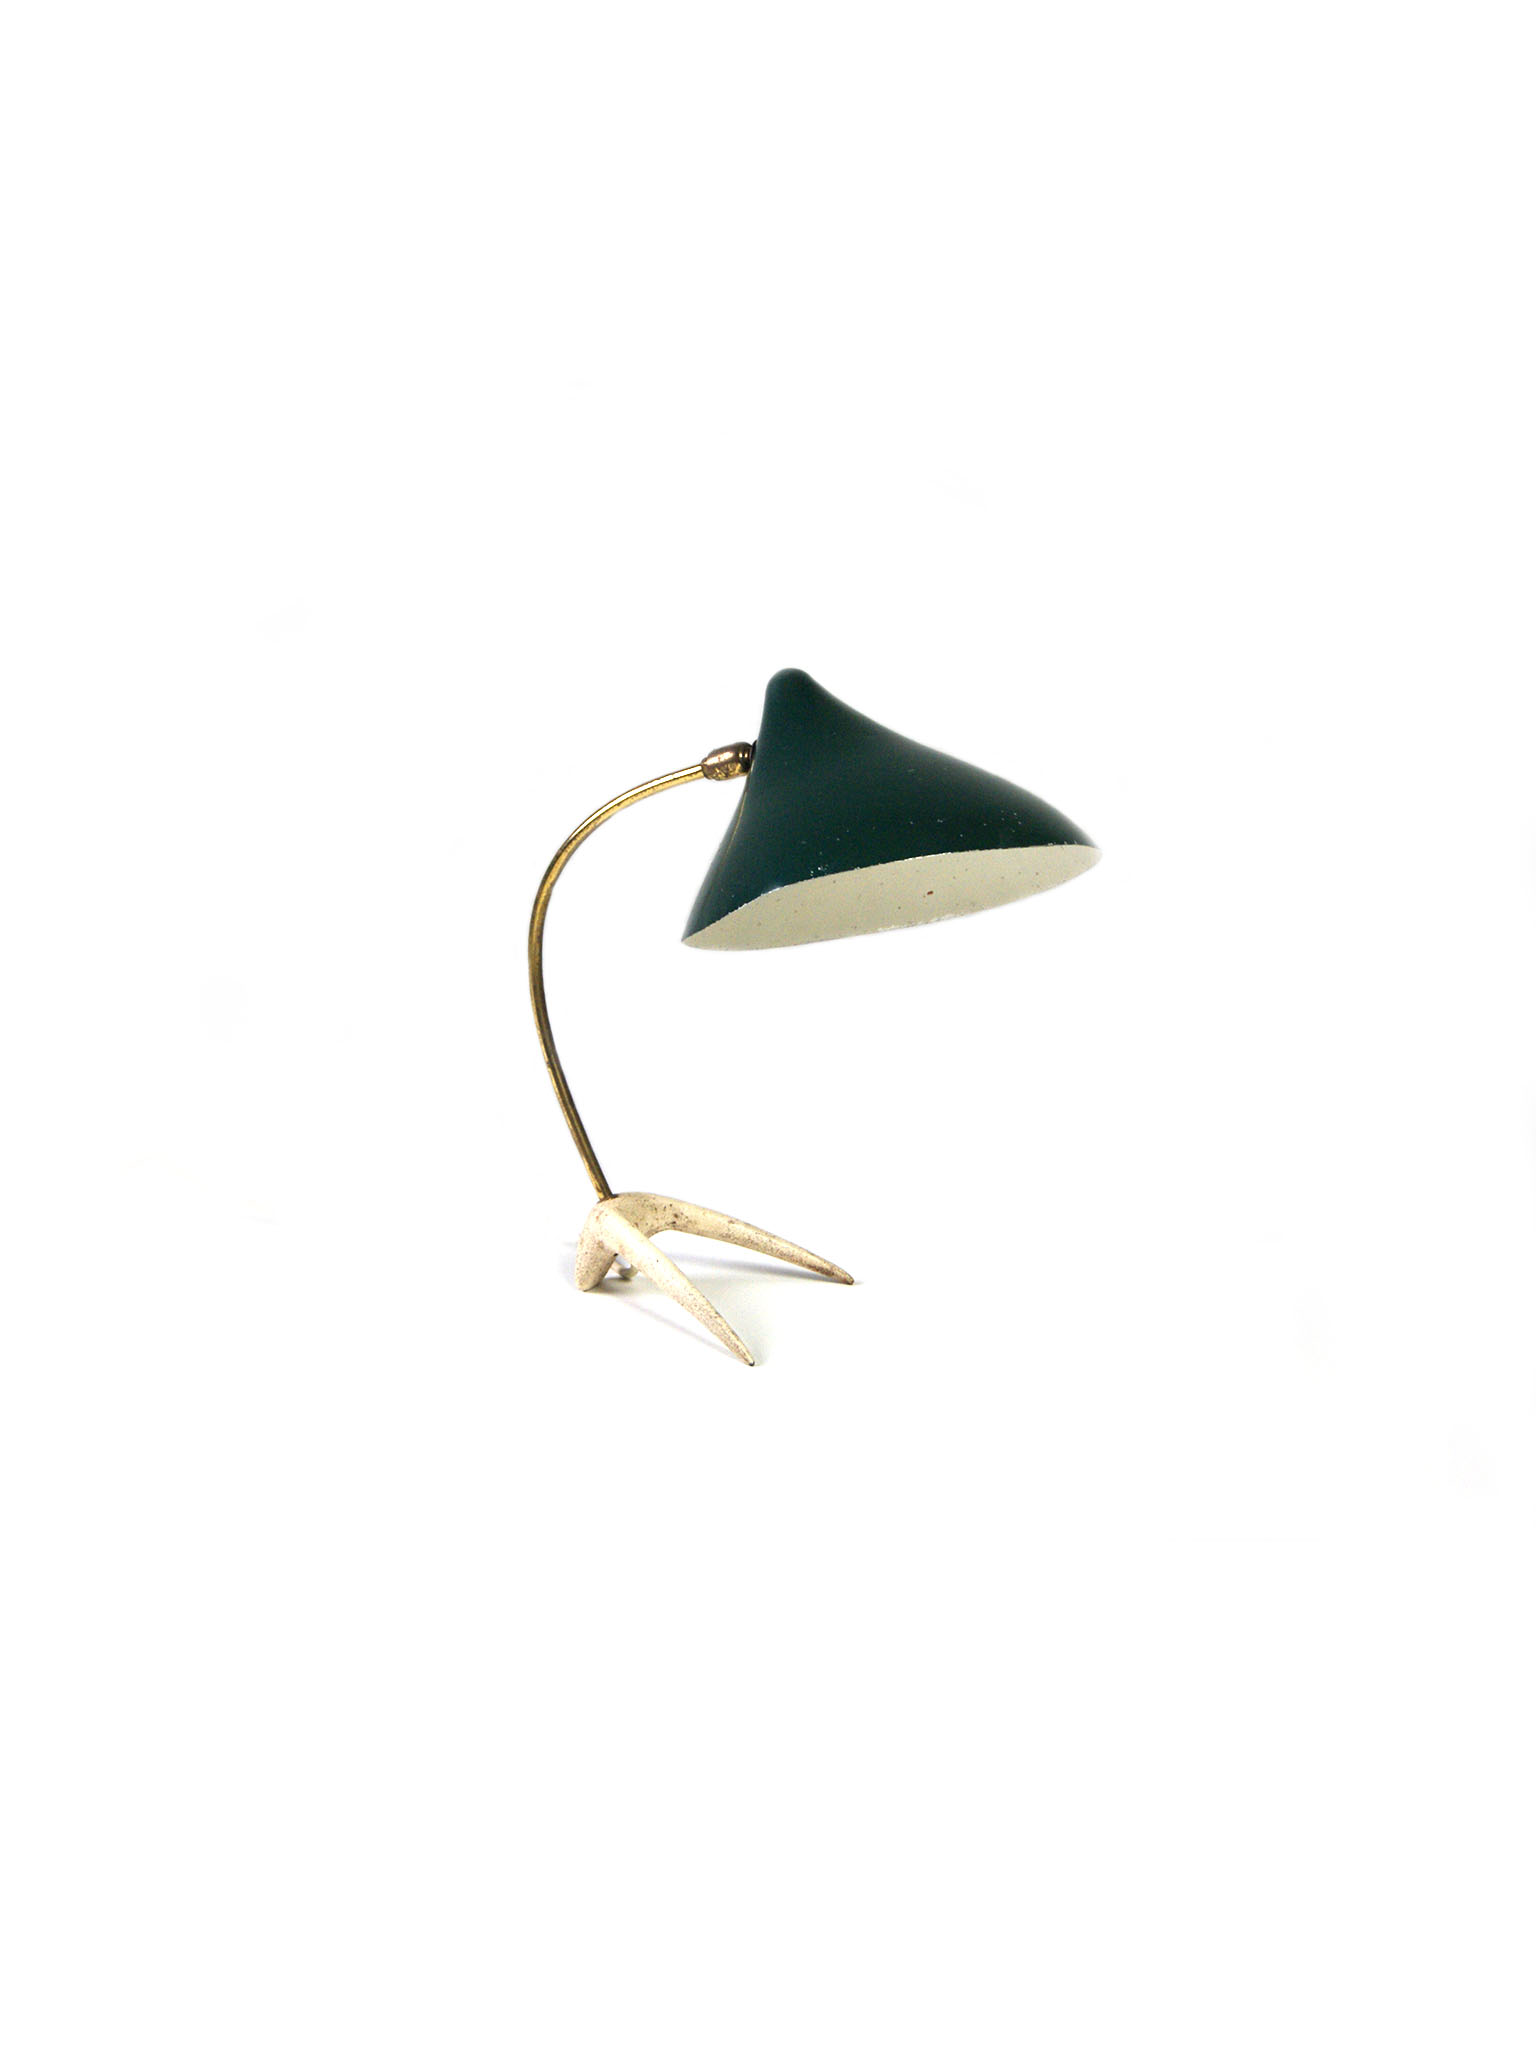 LOUIS KALFF DESK LAMP